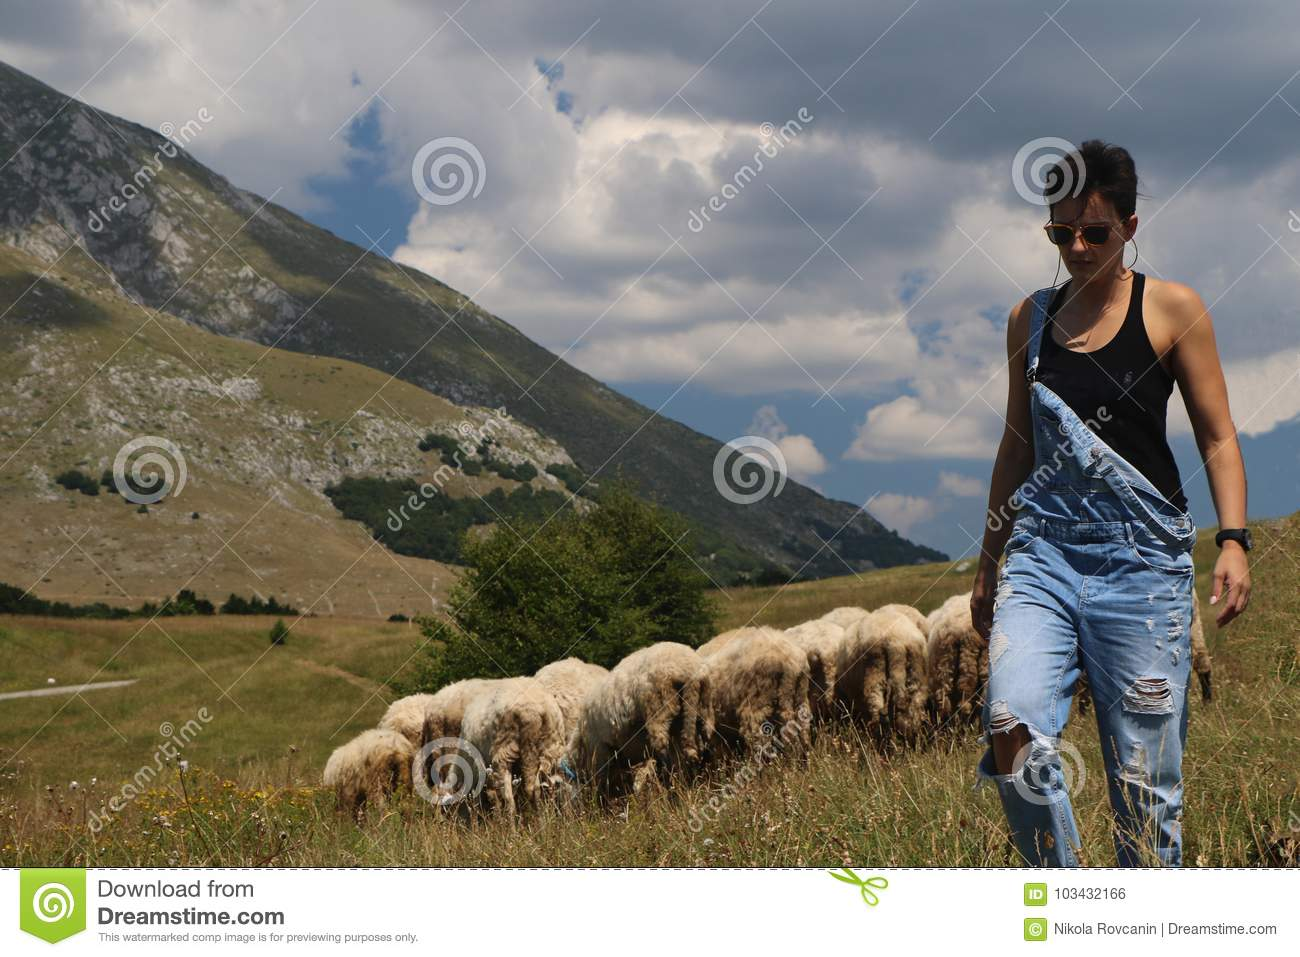 Woman with sheeps in the background